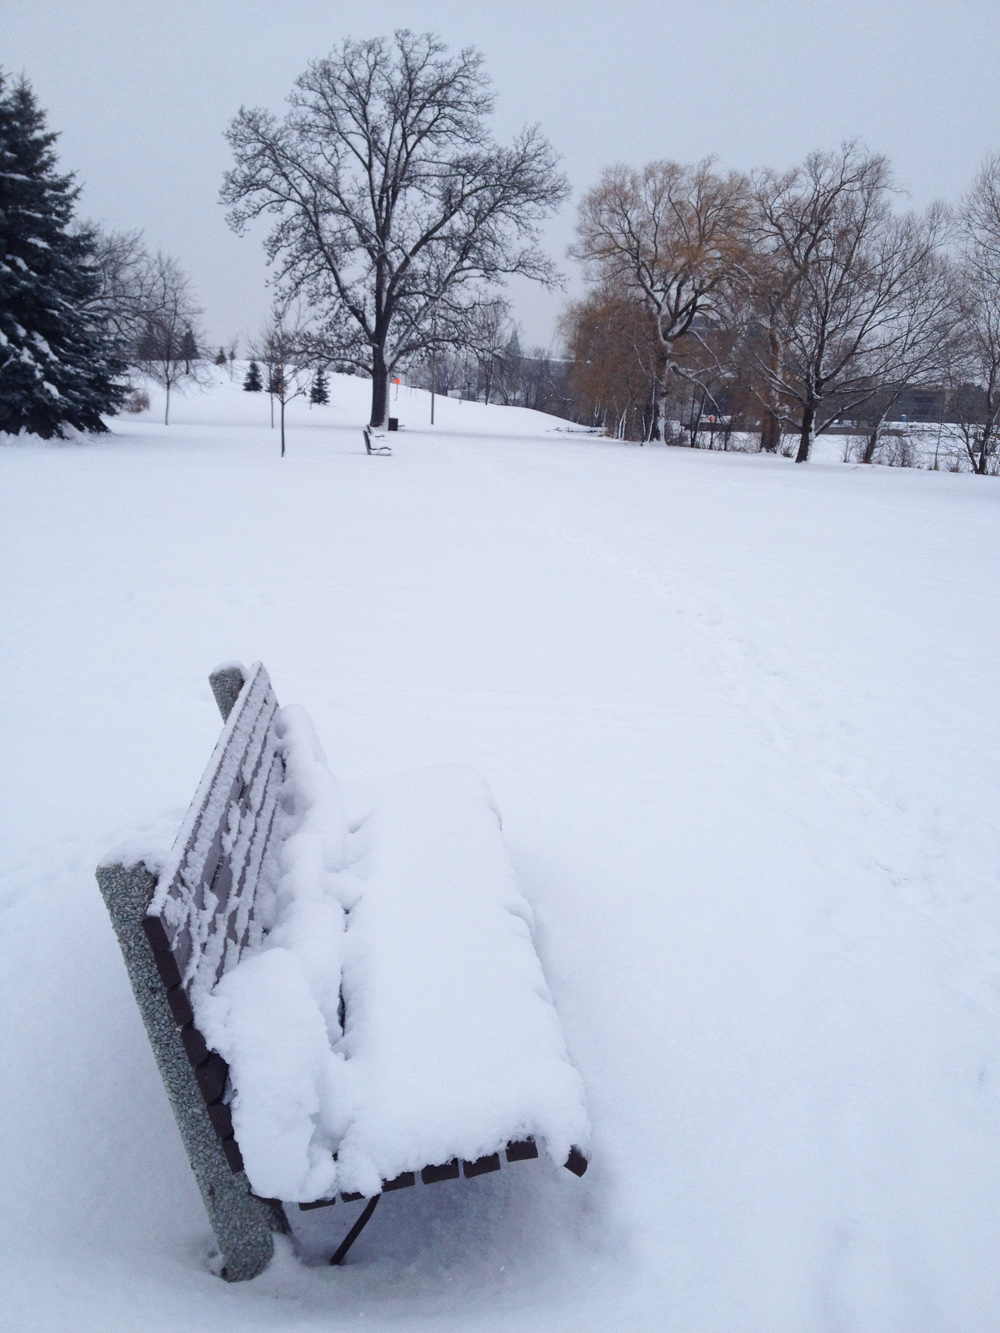 Path through Bordeleau Park